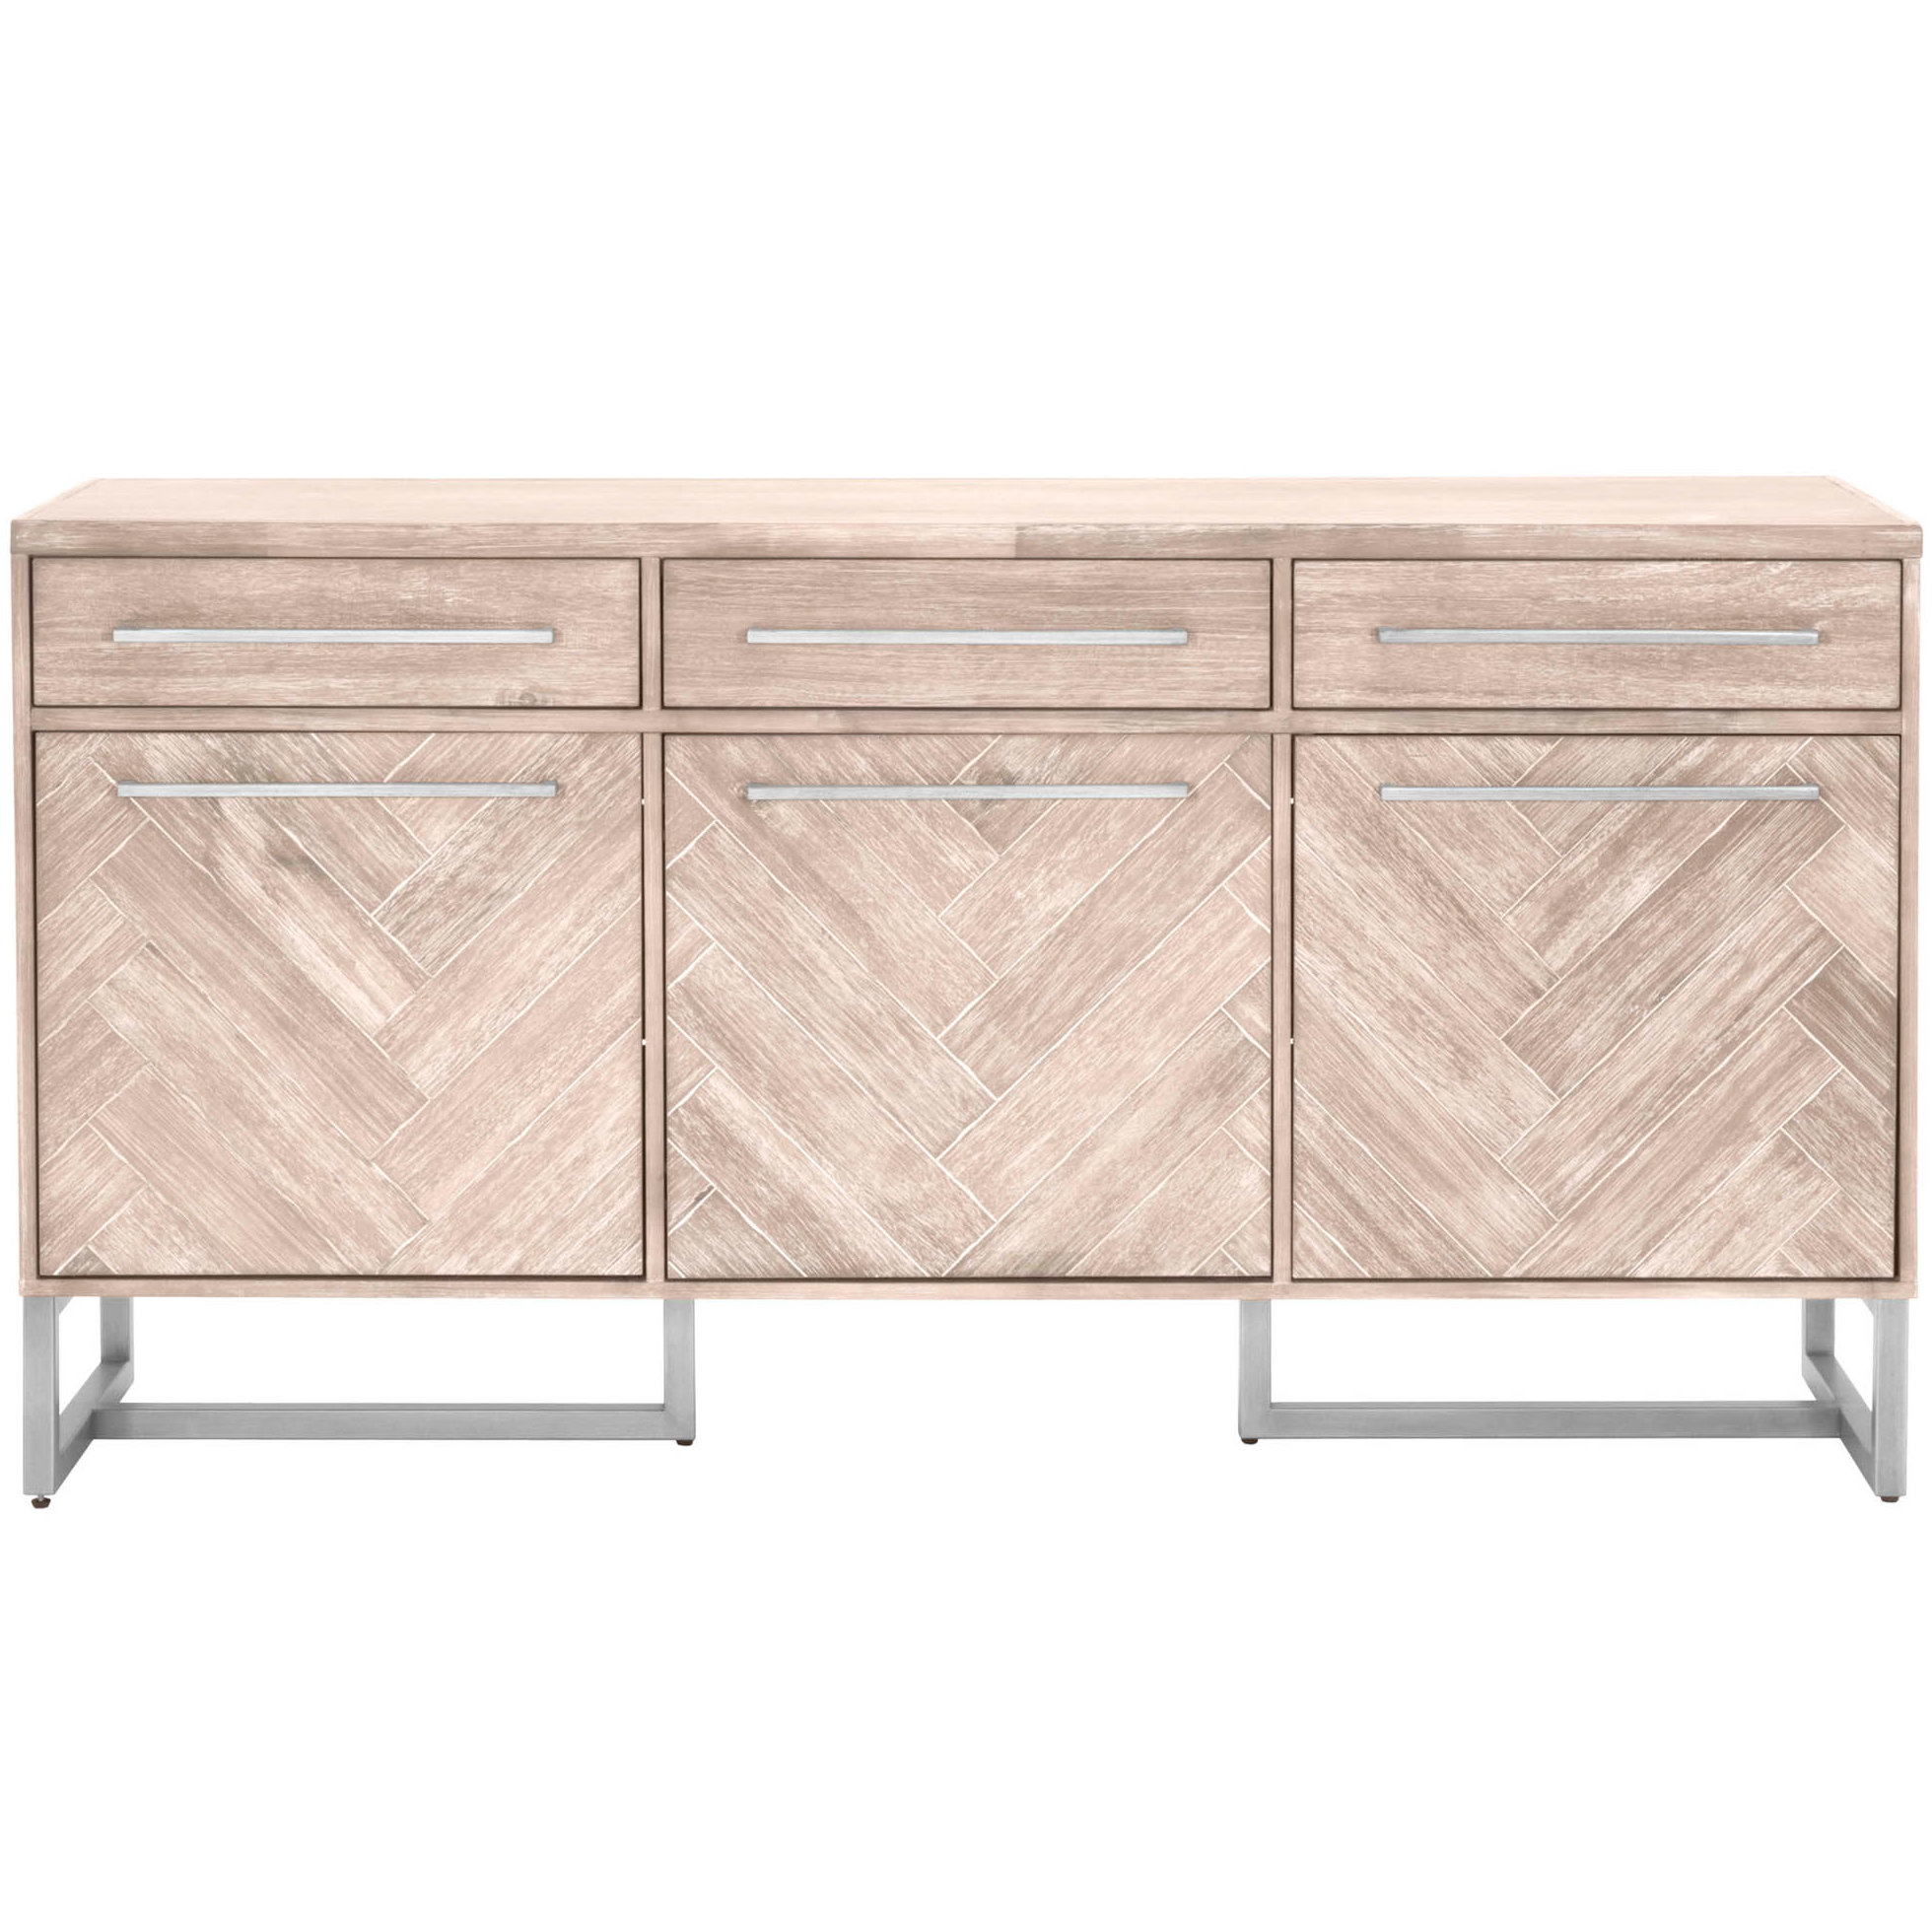 Inspiration about Tre Sideboard Pertaining To 2018 Dillen Sideboards (#18 of 20)